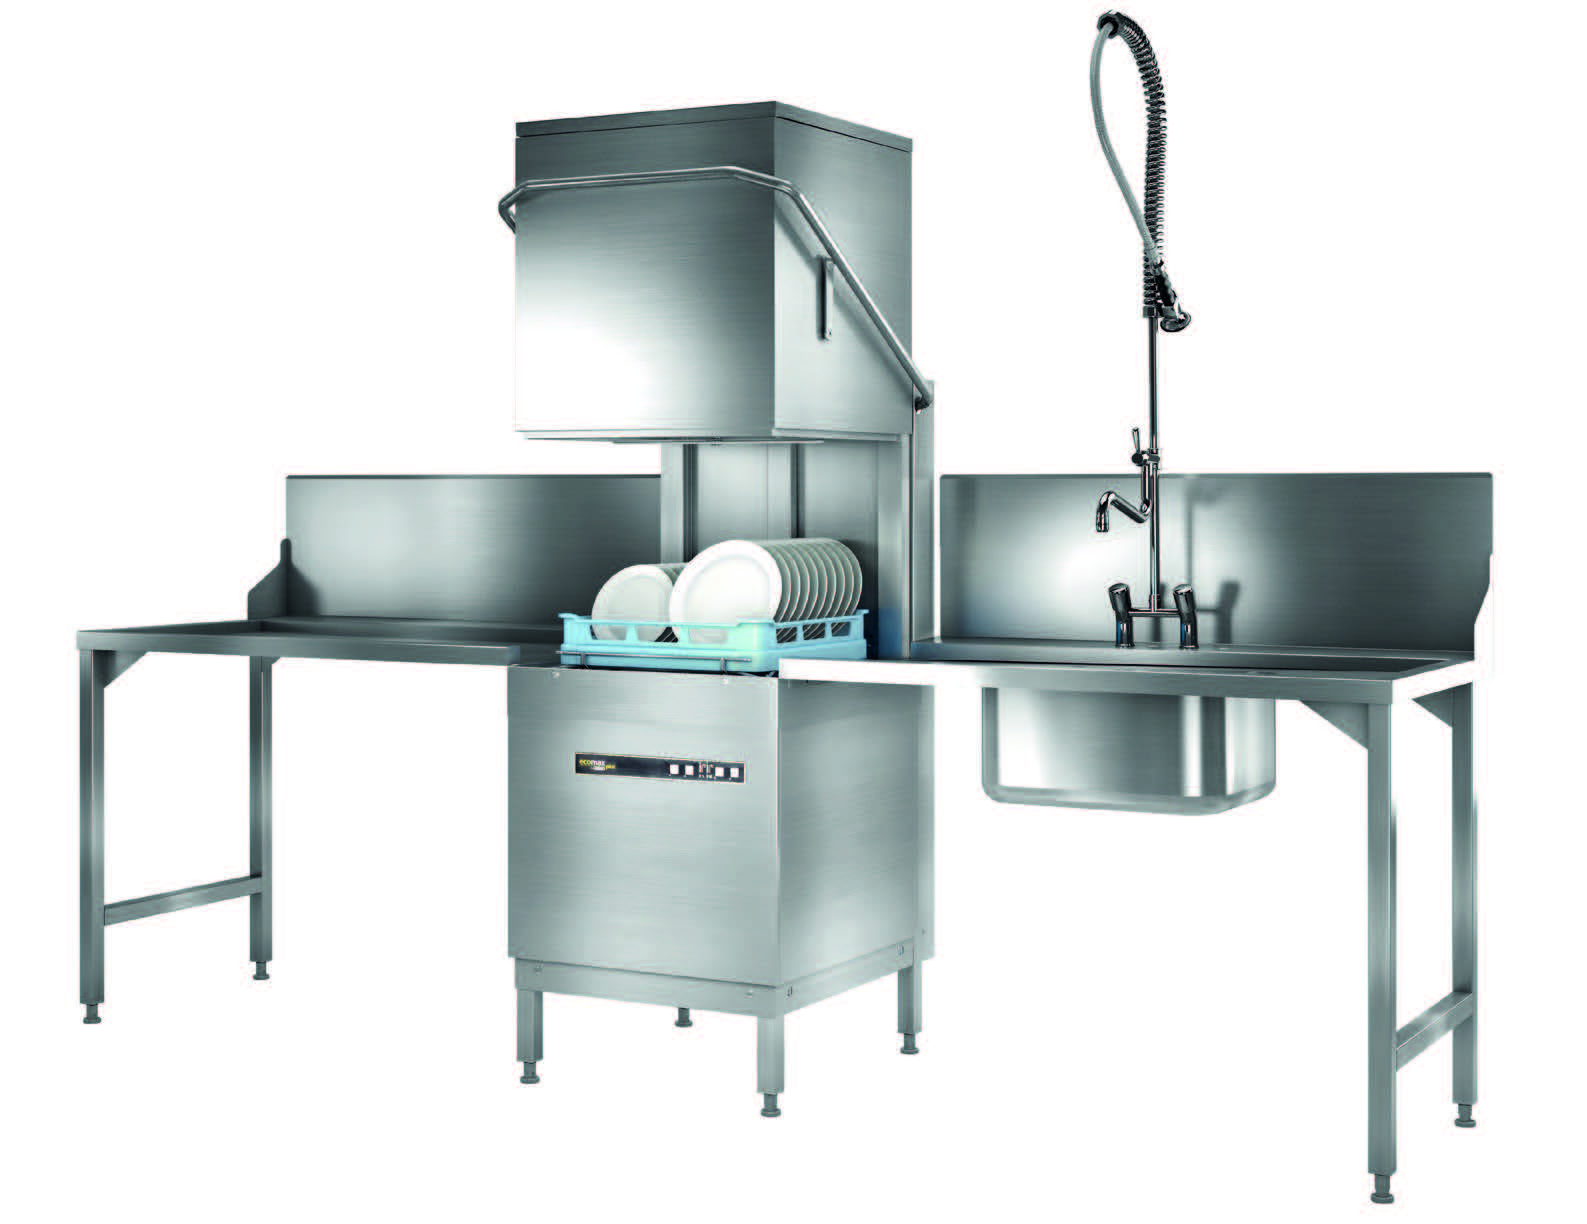 Hobart baraid changes to ecomax plus commercial kitchen for Kitchen designs hobart